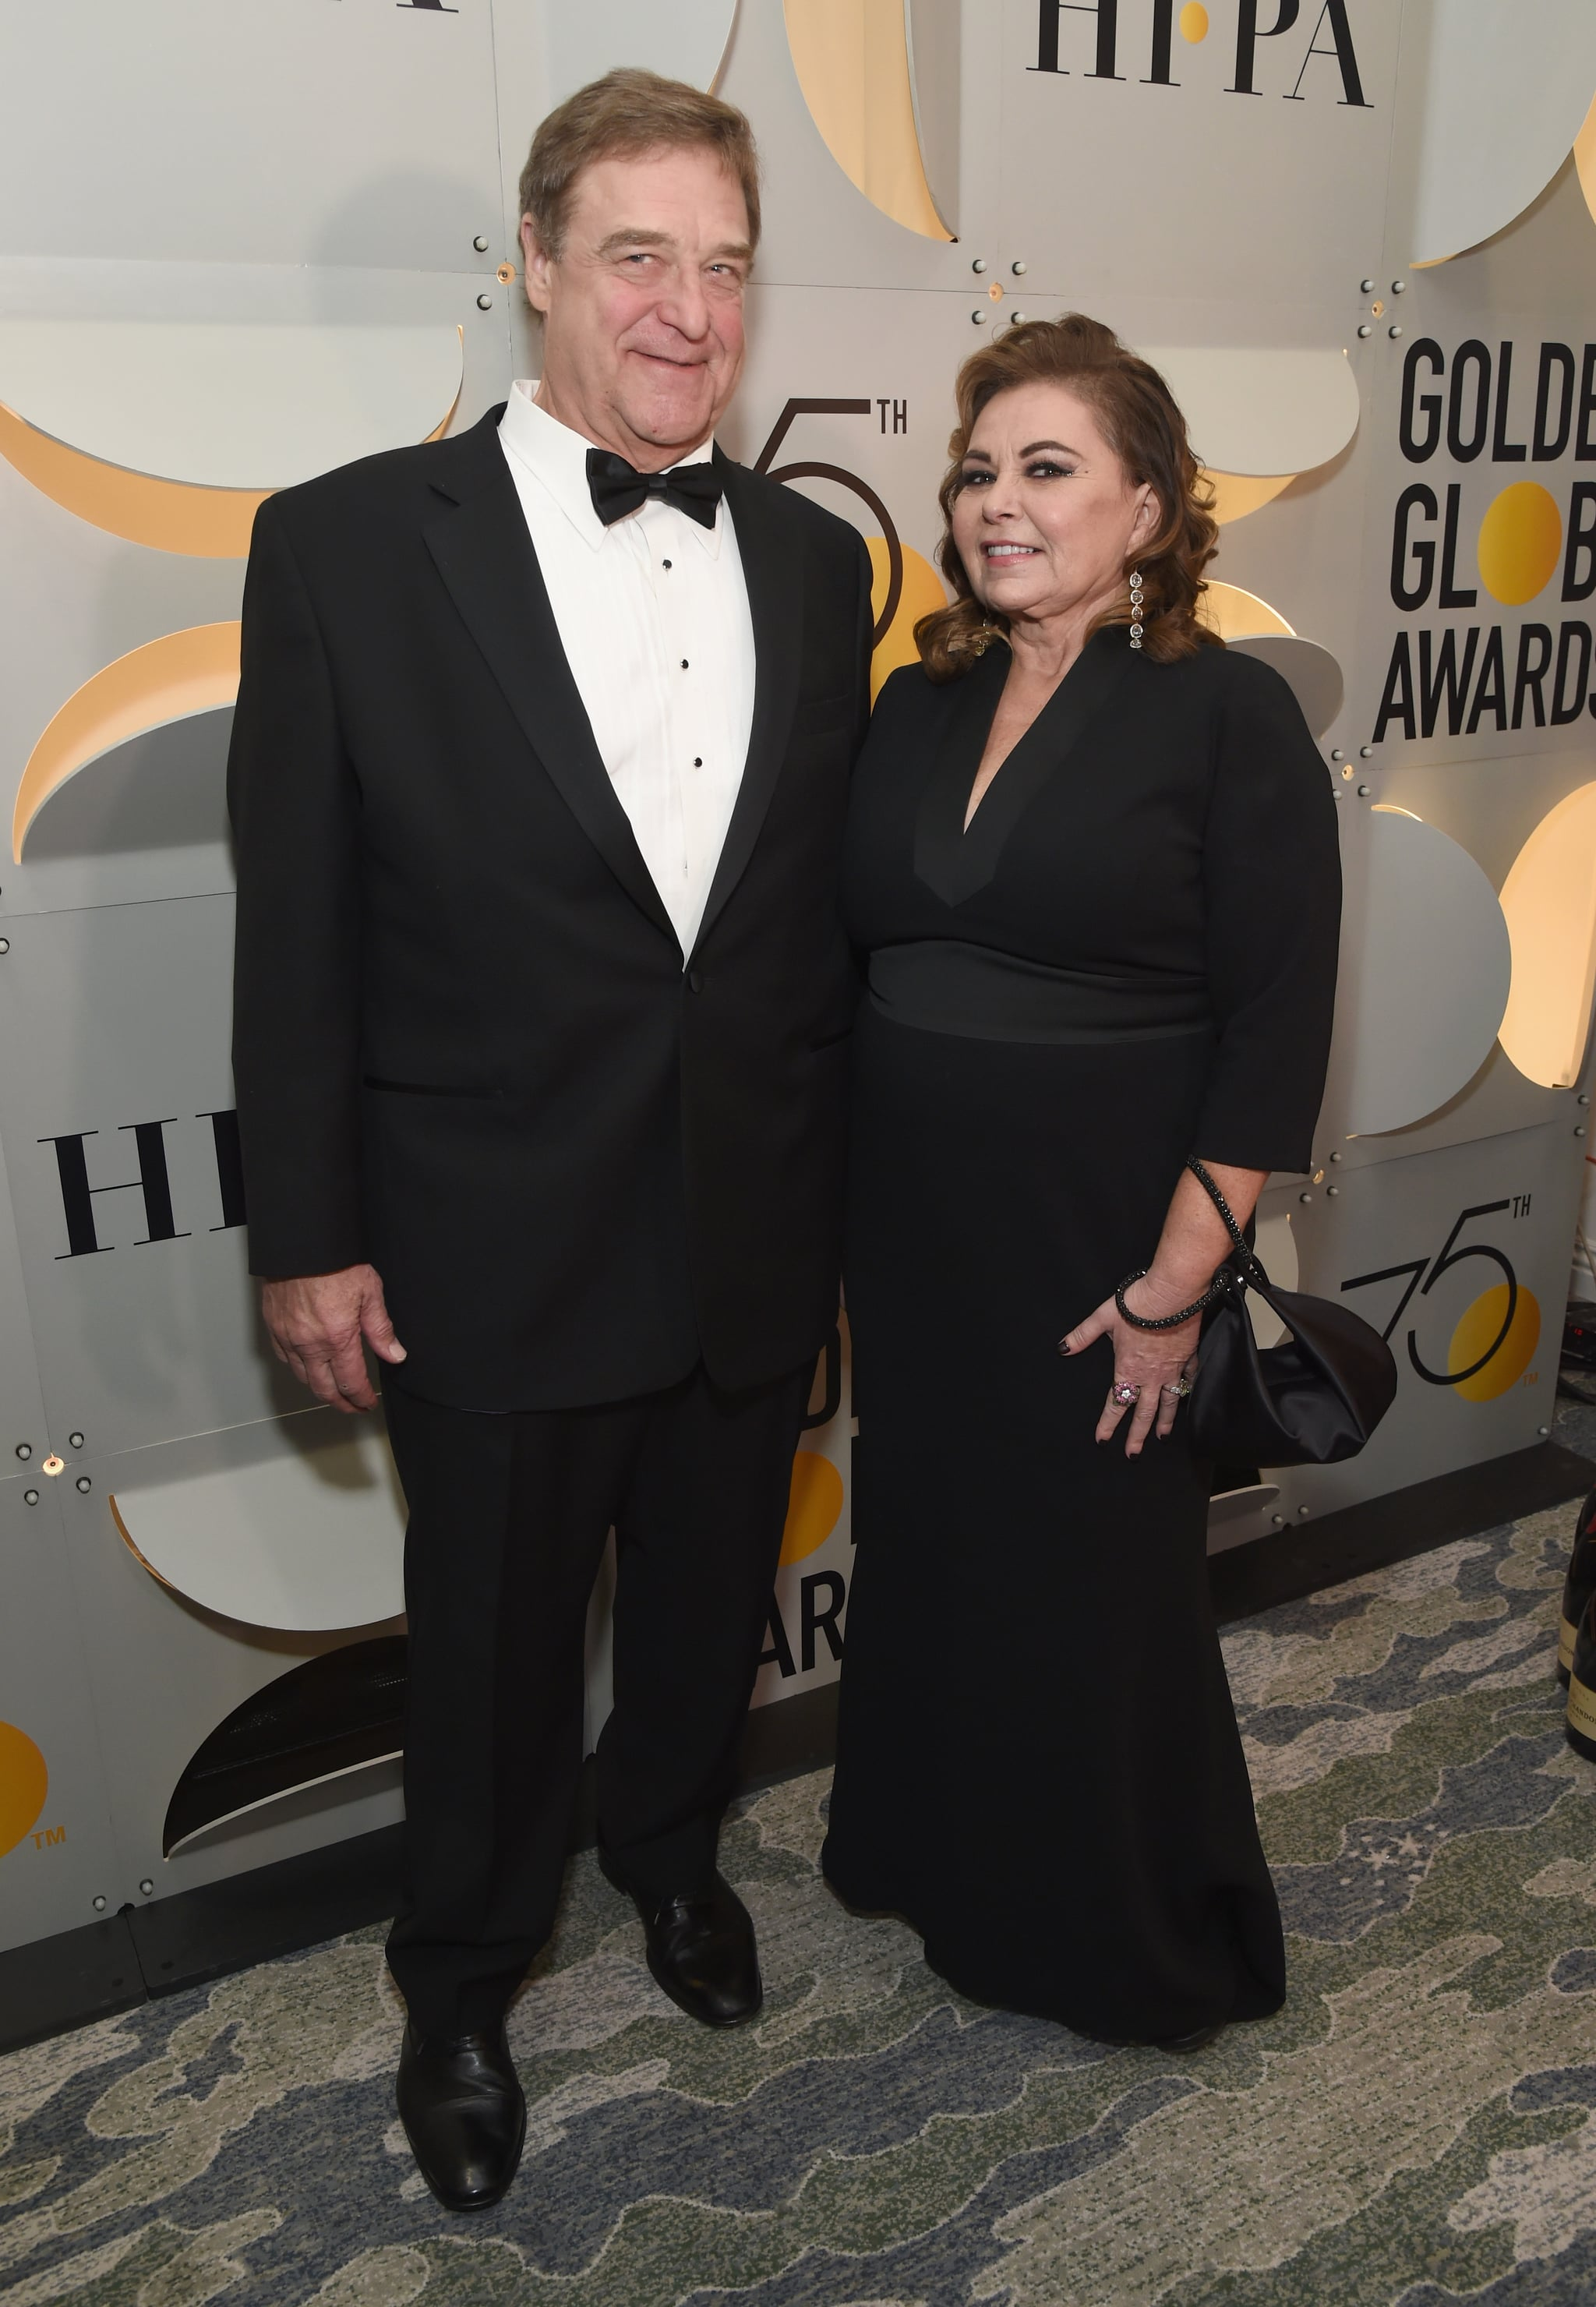 BEVERLY HILLS, CA - JANUARY 07:  Actors John Goodman (L) and Roseanne Barr celebrate The 75th Annual Golden Globe Awards with Moet & Chandon at The Beverly Hilton Hotel on January 7, 2018 in Beverly Hills, California.  (Photo by Michael Kovac/Getty Images for Moet & Chandon)